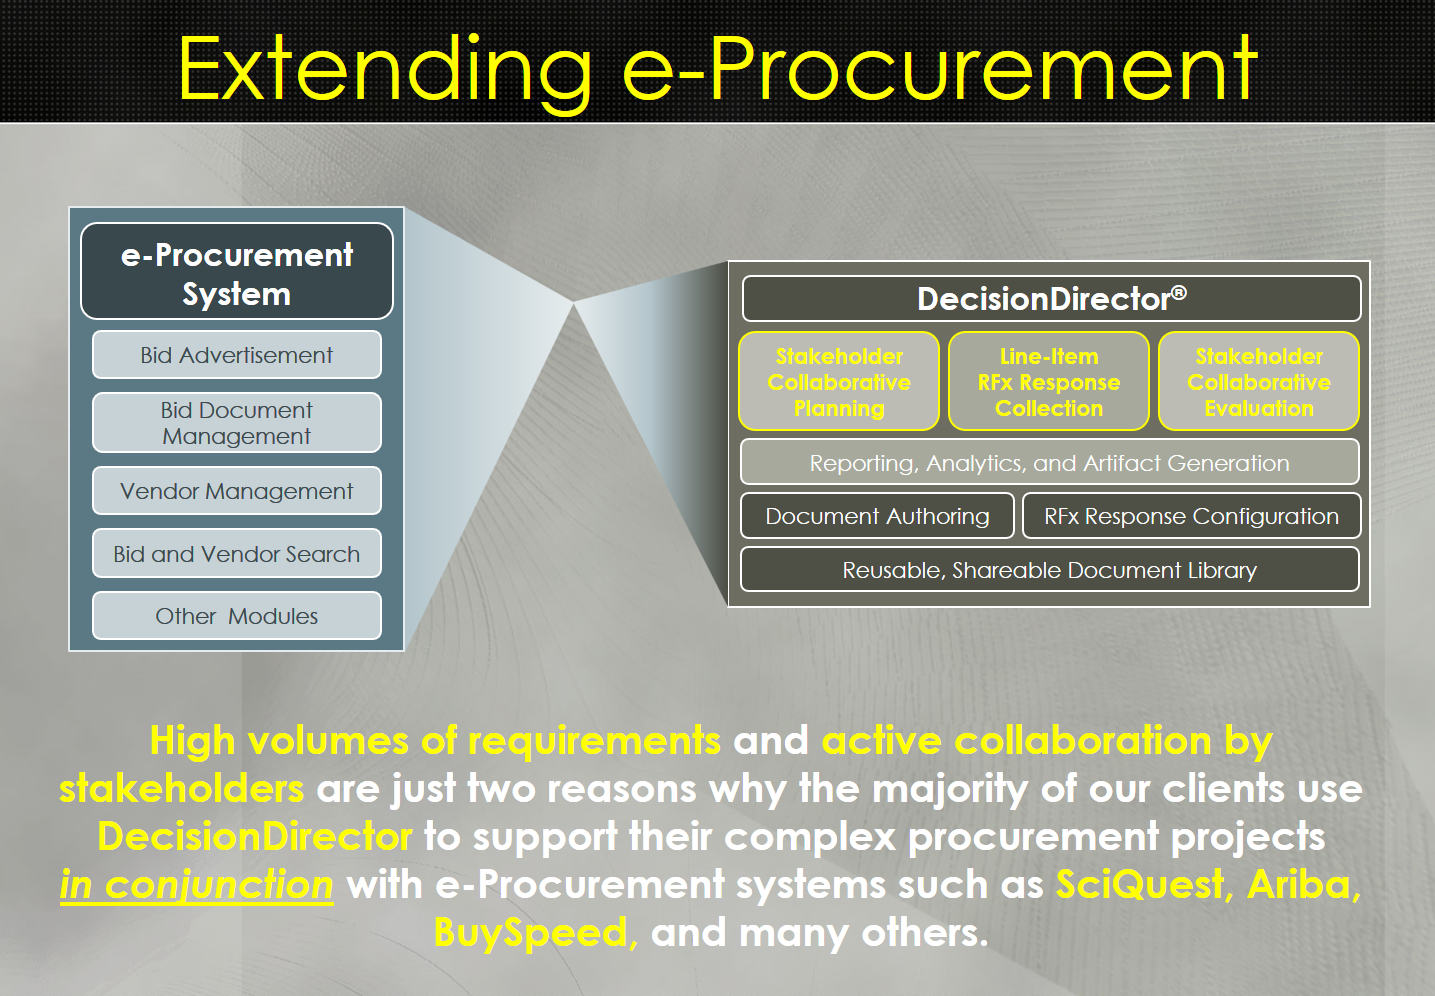 DecisionDirector extends e-Procurement and Procure-to-Pay.